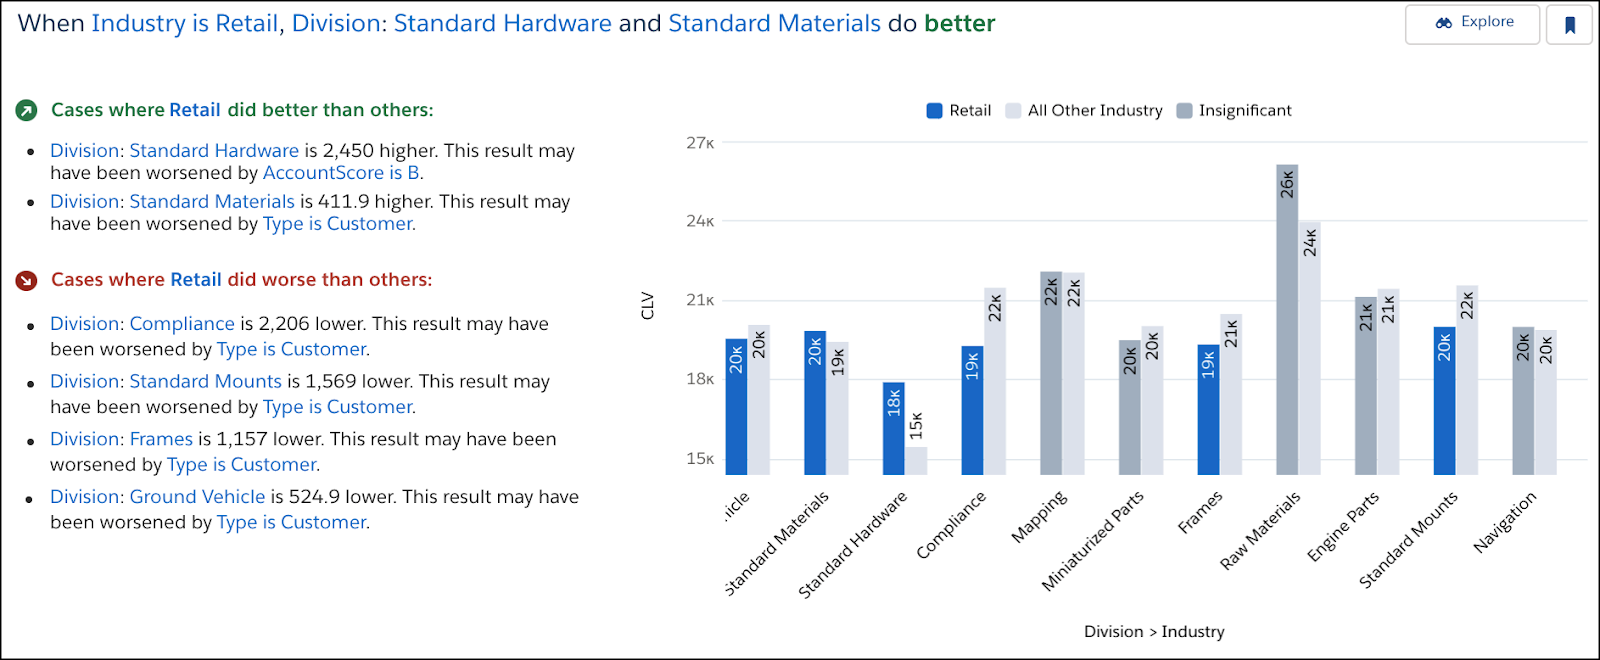 CLV by Division when Industry is Retail insight